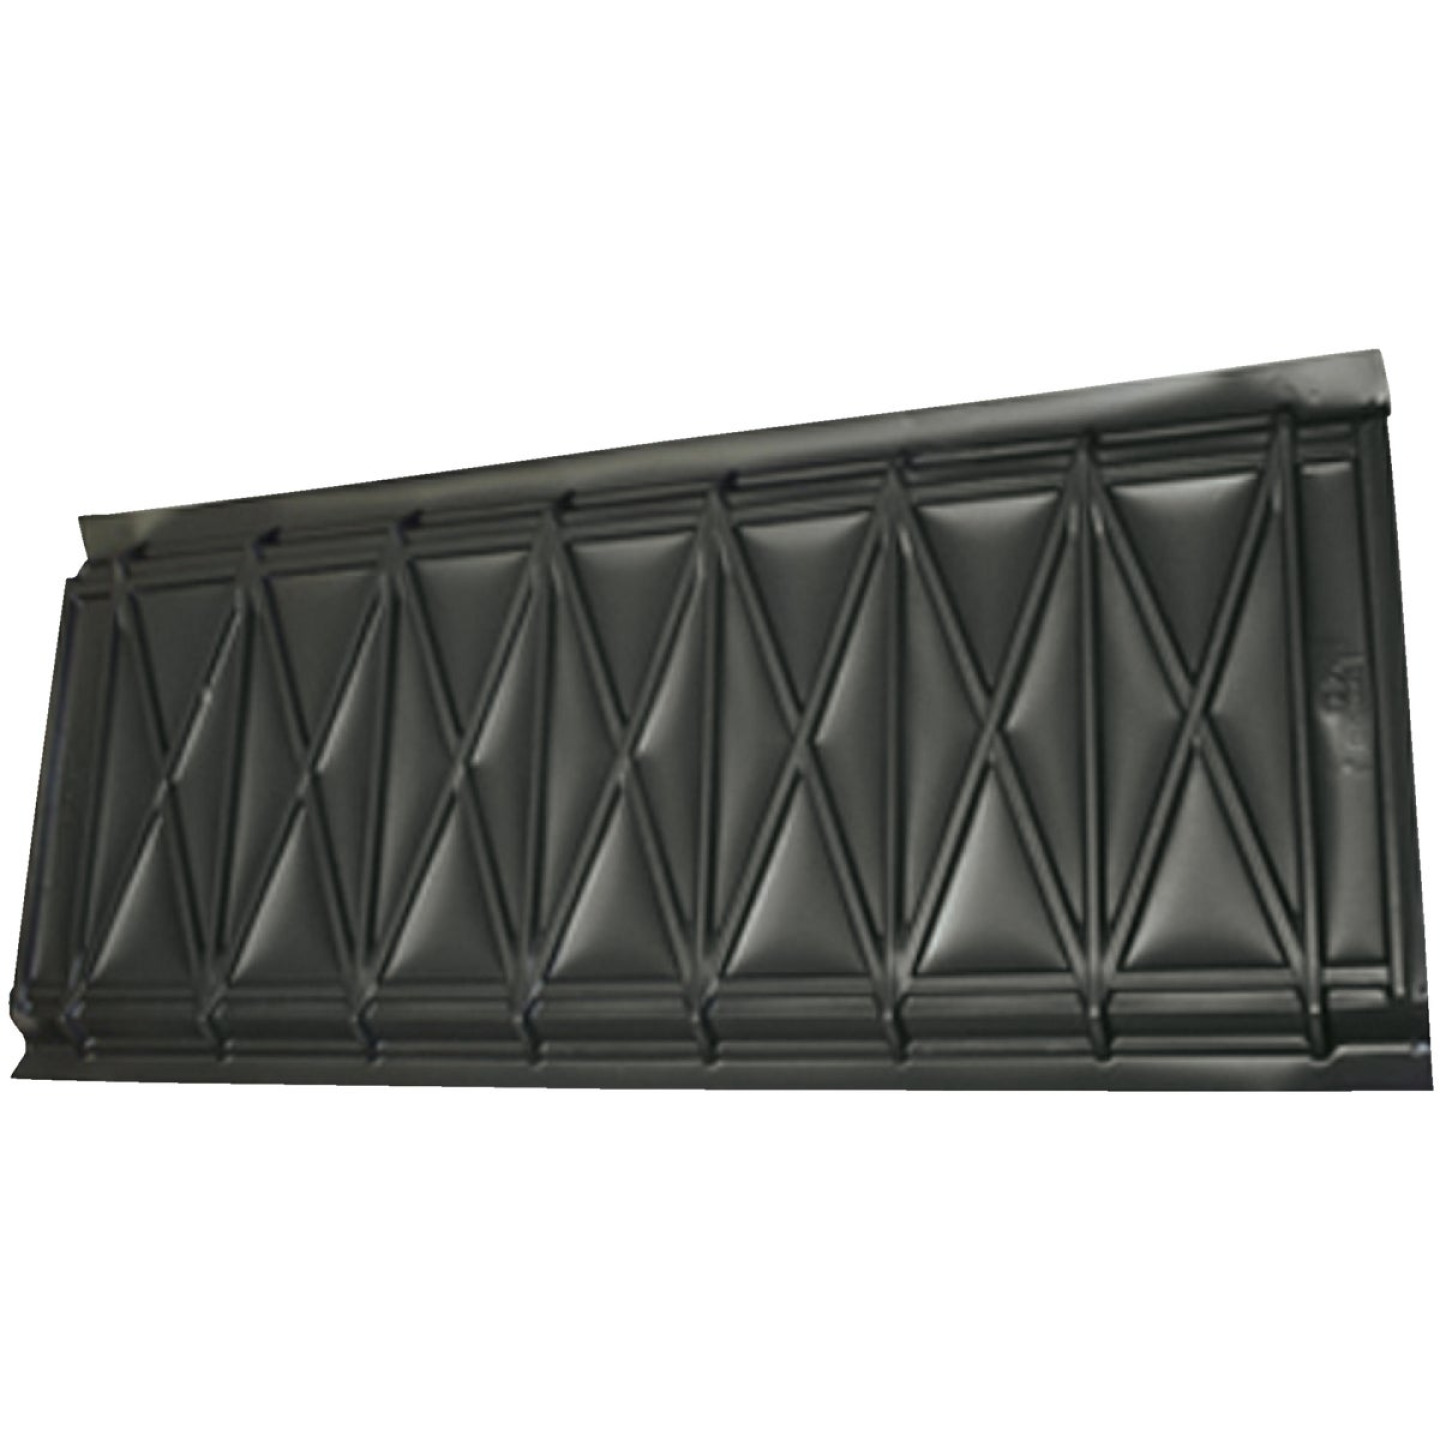 """ADO ProVent 22"""" x 48"""" High Impact Polystyrene ProVent Attic Rafter Vent Image 1"""